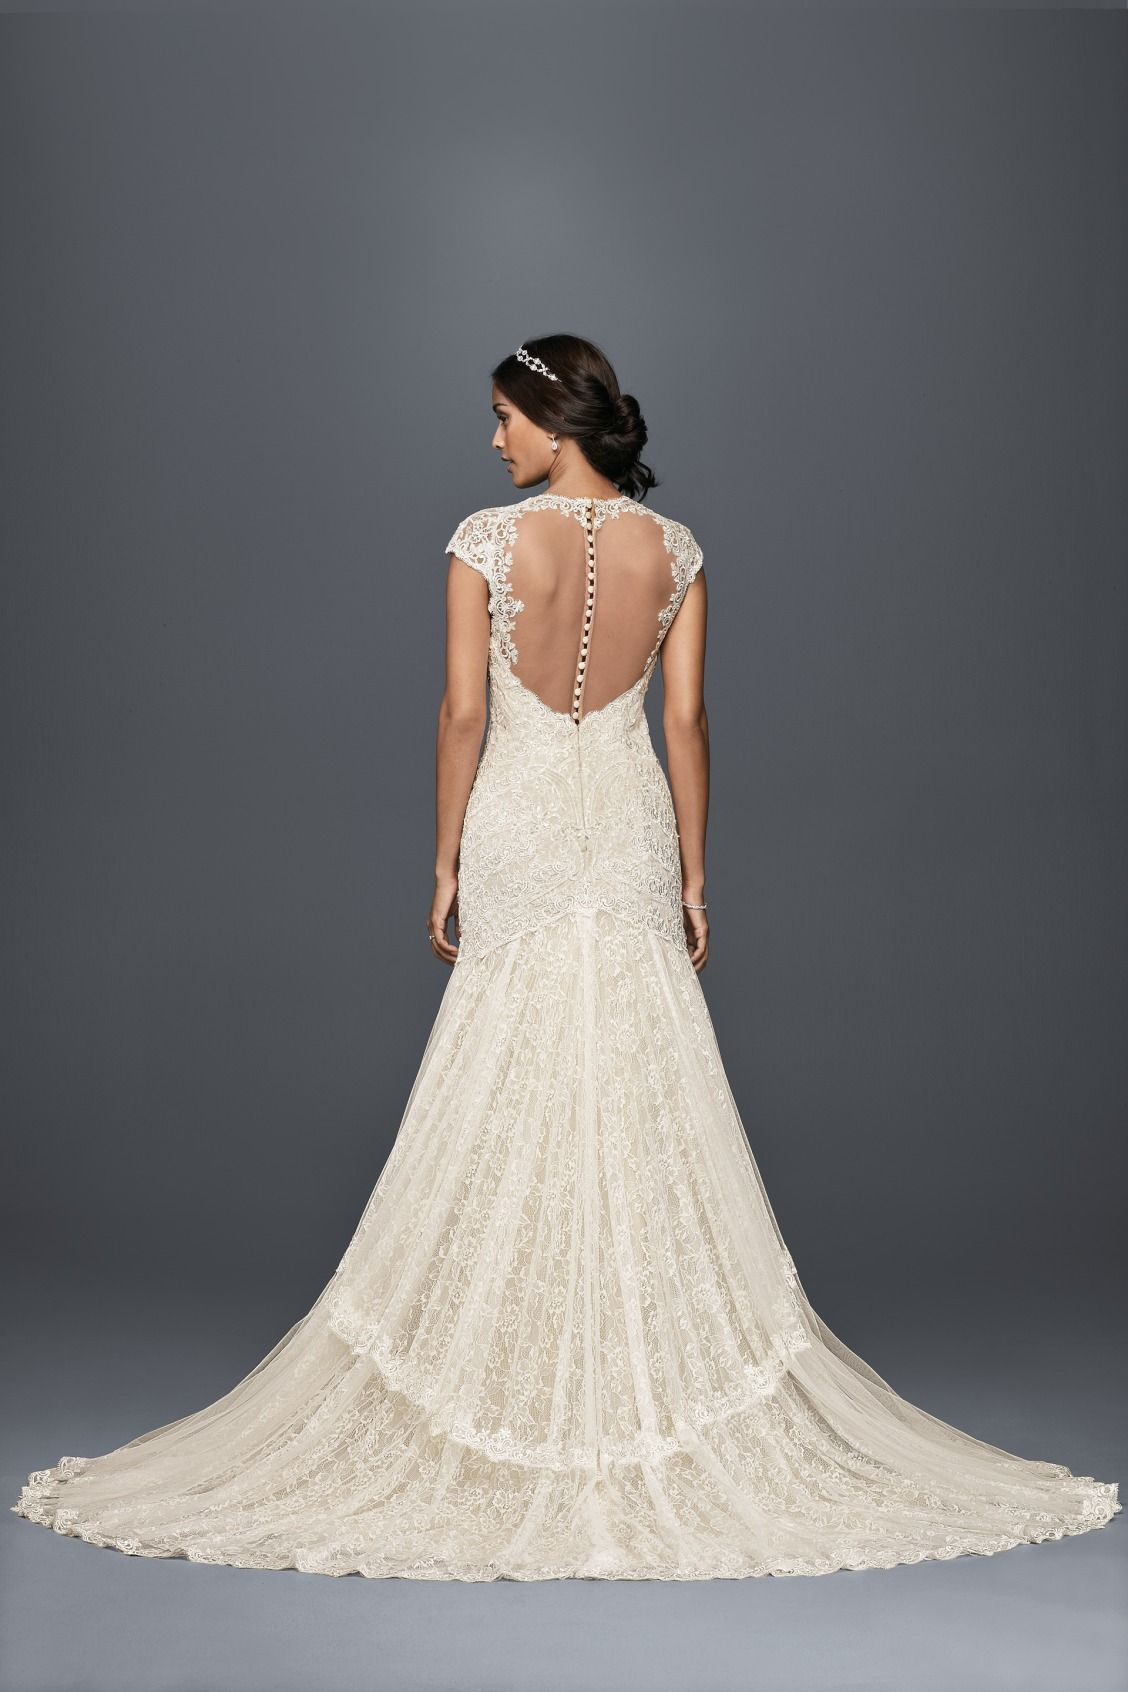 18a758bacec Cap Sleeve Sweetheart Neckline Tiered Lace A-Line Wedding Dress by Melissa  Sweet available at David s Bridal